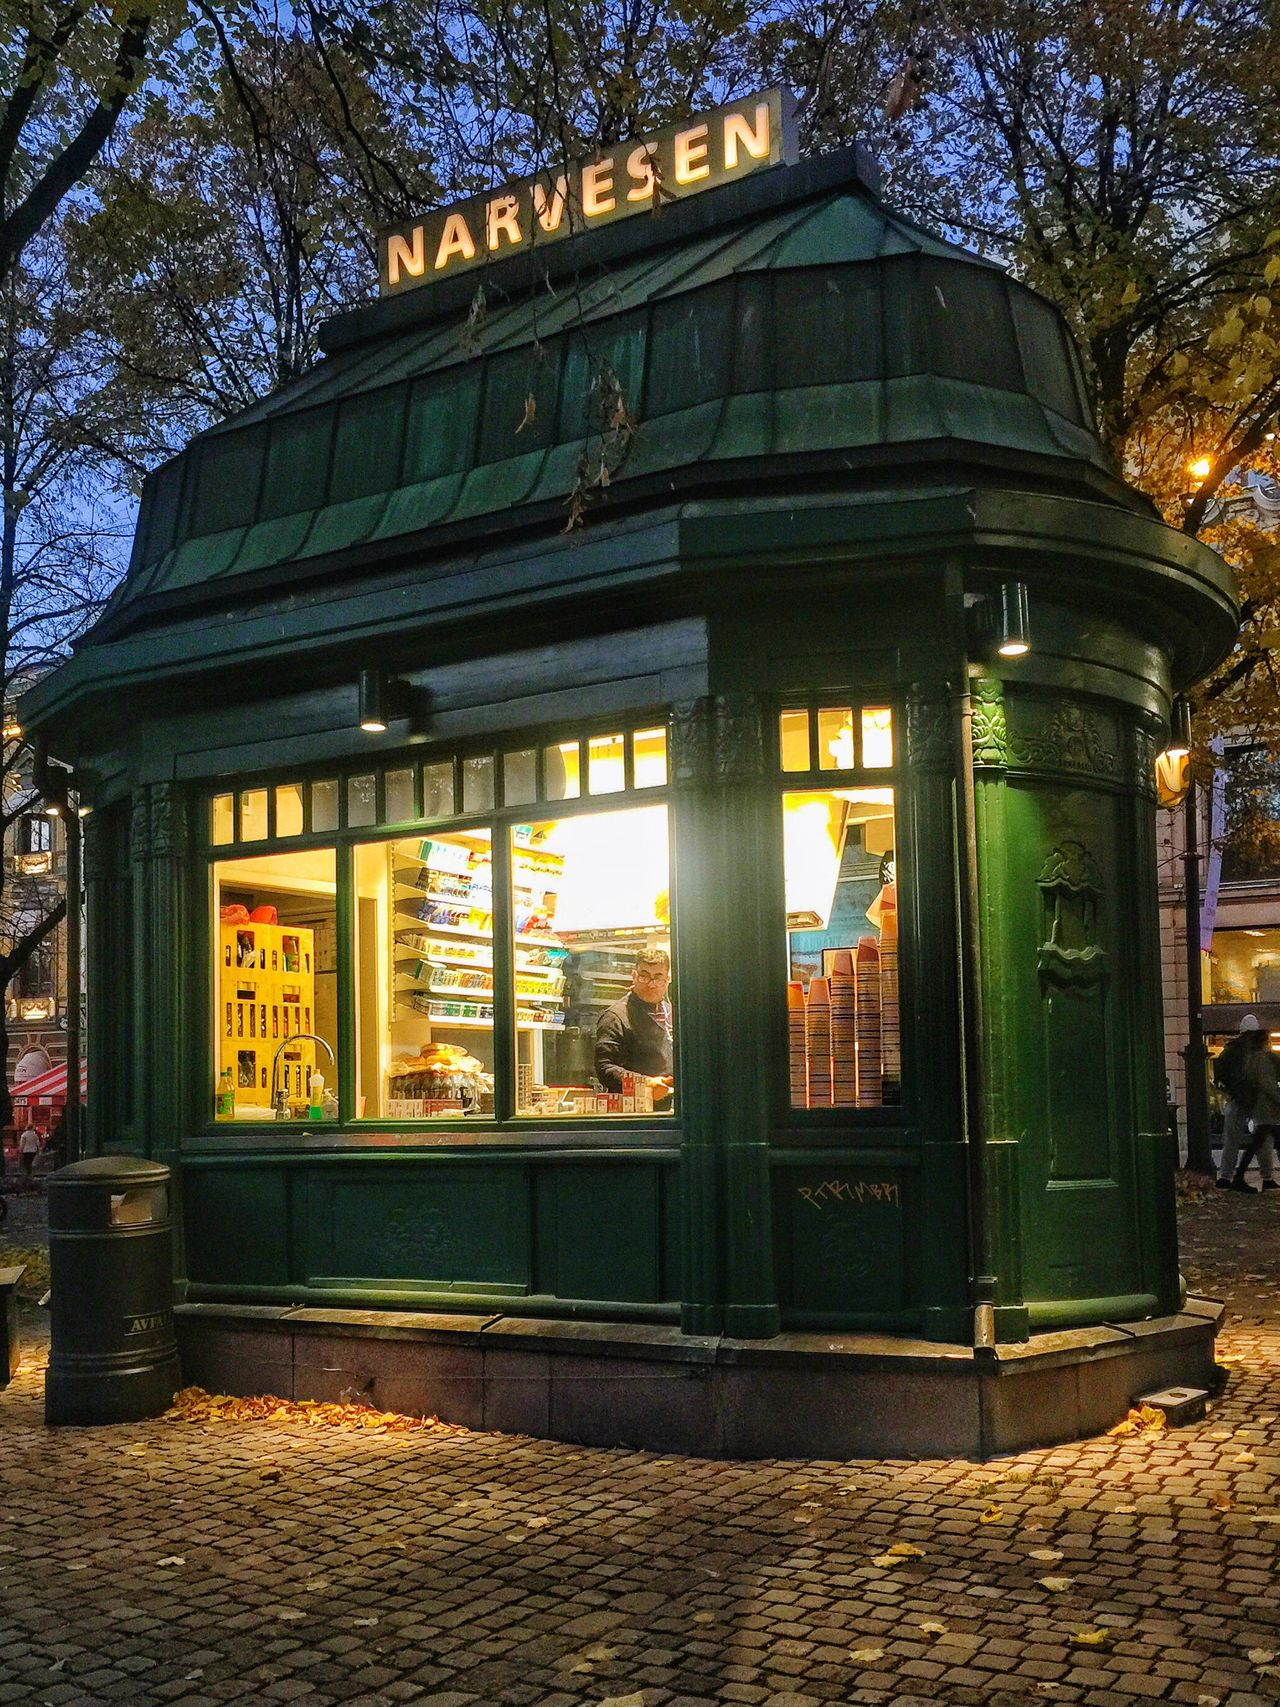 Lovely little kiosk Architecture Streetphotography Retro Retro Style Norway Oslo Oslo Norway Visitnorway Visitoslo Classic Norway Beautiful Destinations Travel Destinations Autumn Old-fashioned